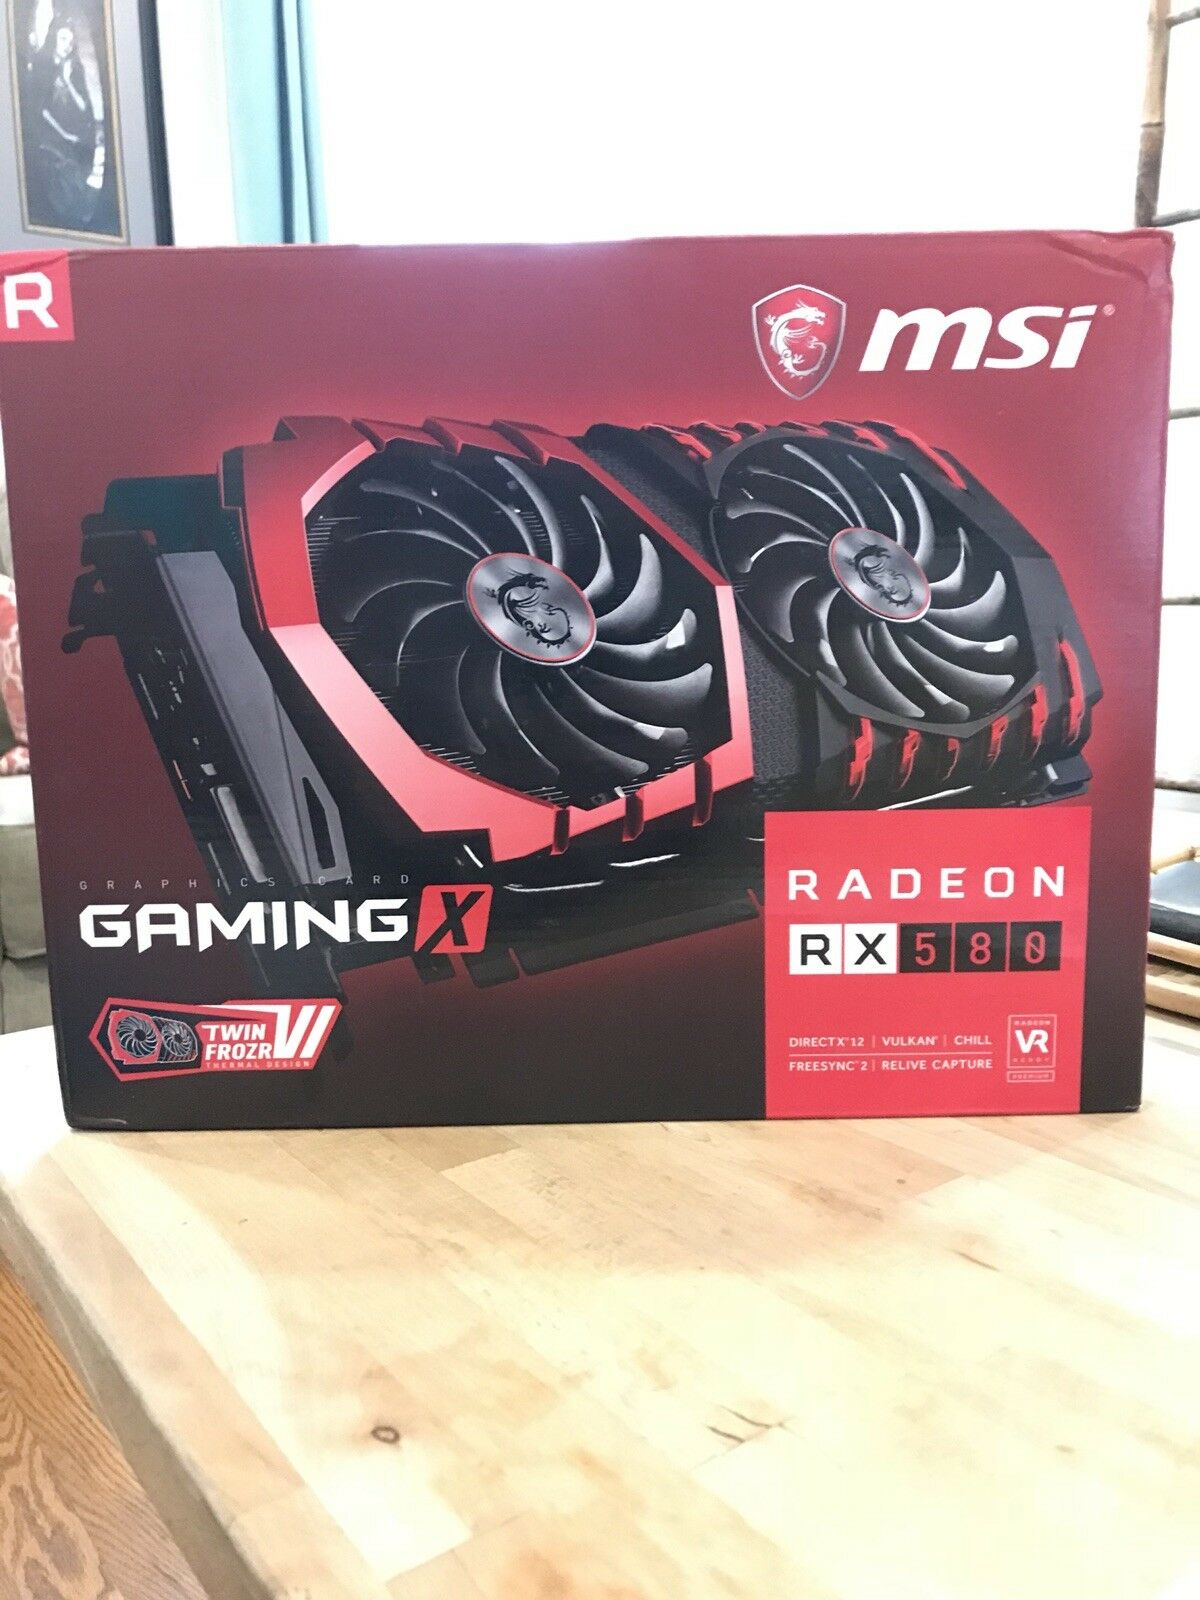 msi radeon rx 580 gaming x 4gb BOX ONLY REPLACEMENT